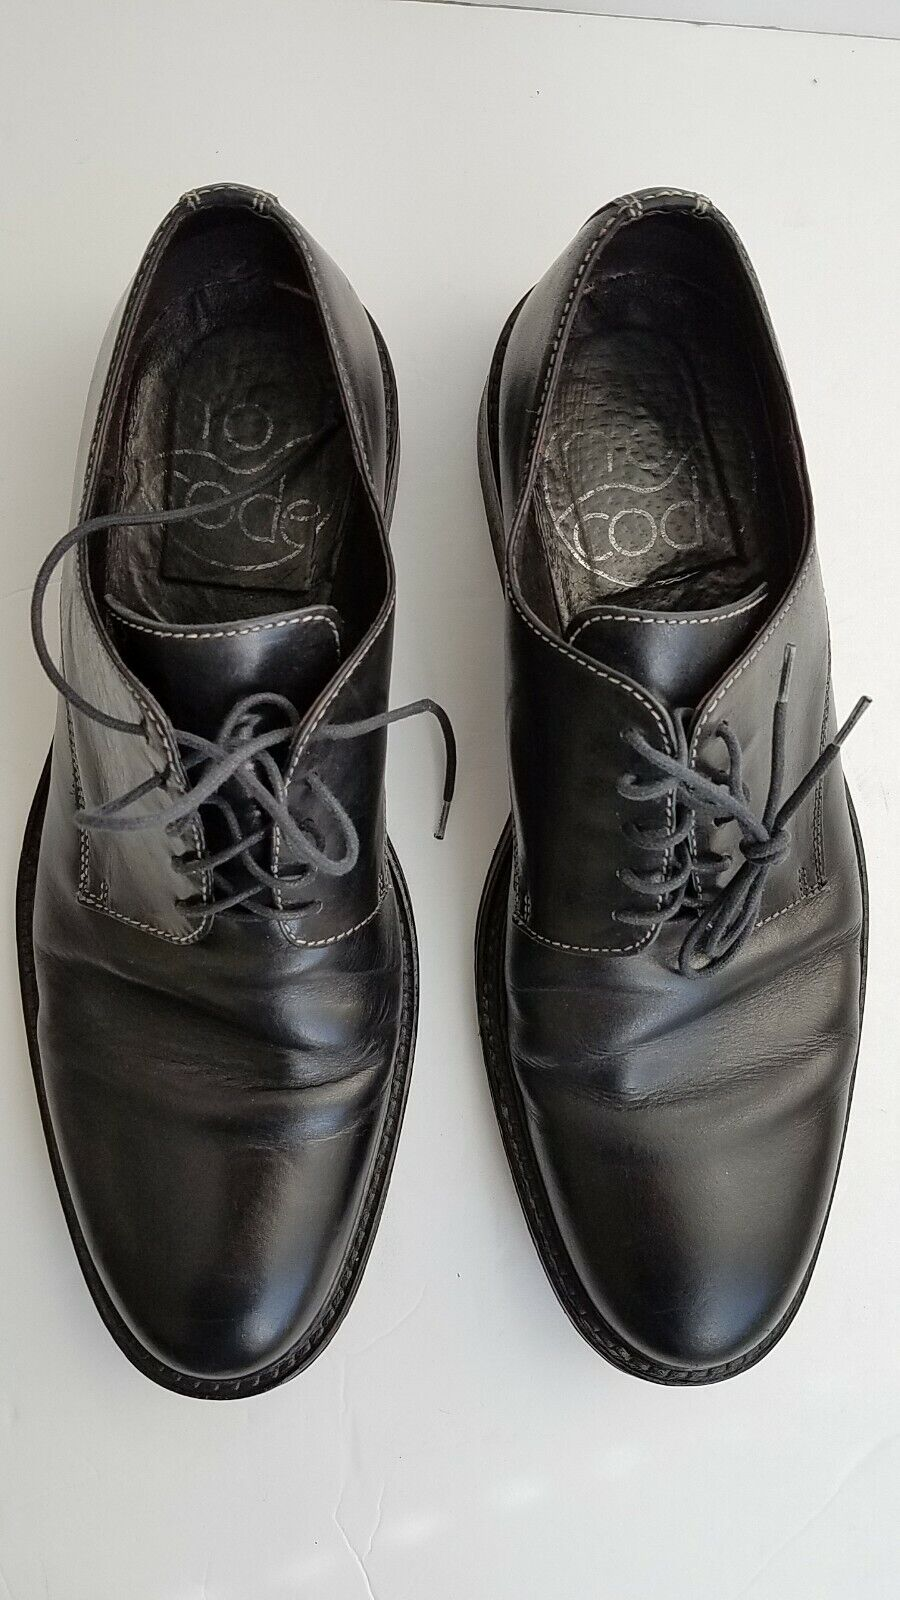 schwarz LEATHER VERO CUOIO NO CODE OXFORD herren Größe 10.5  43 EUR DRESS schuhe